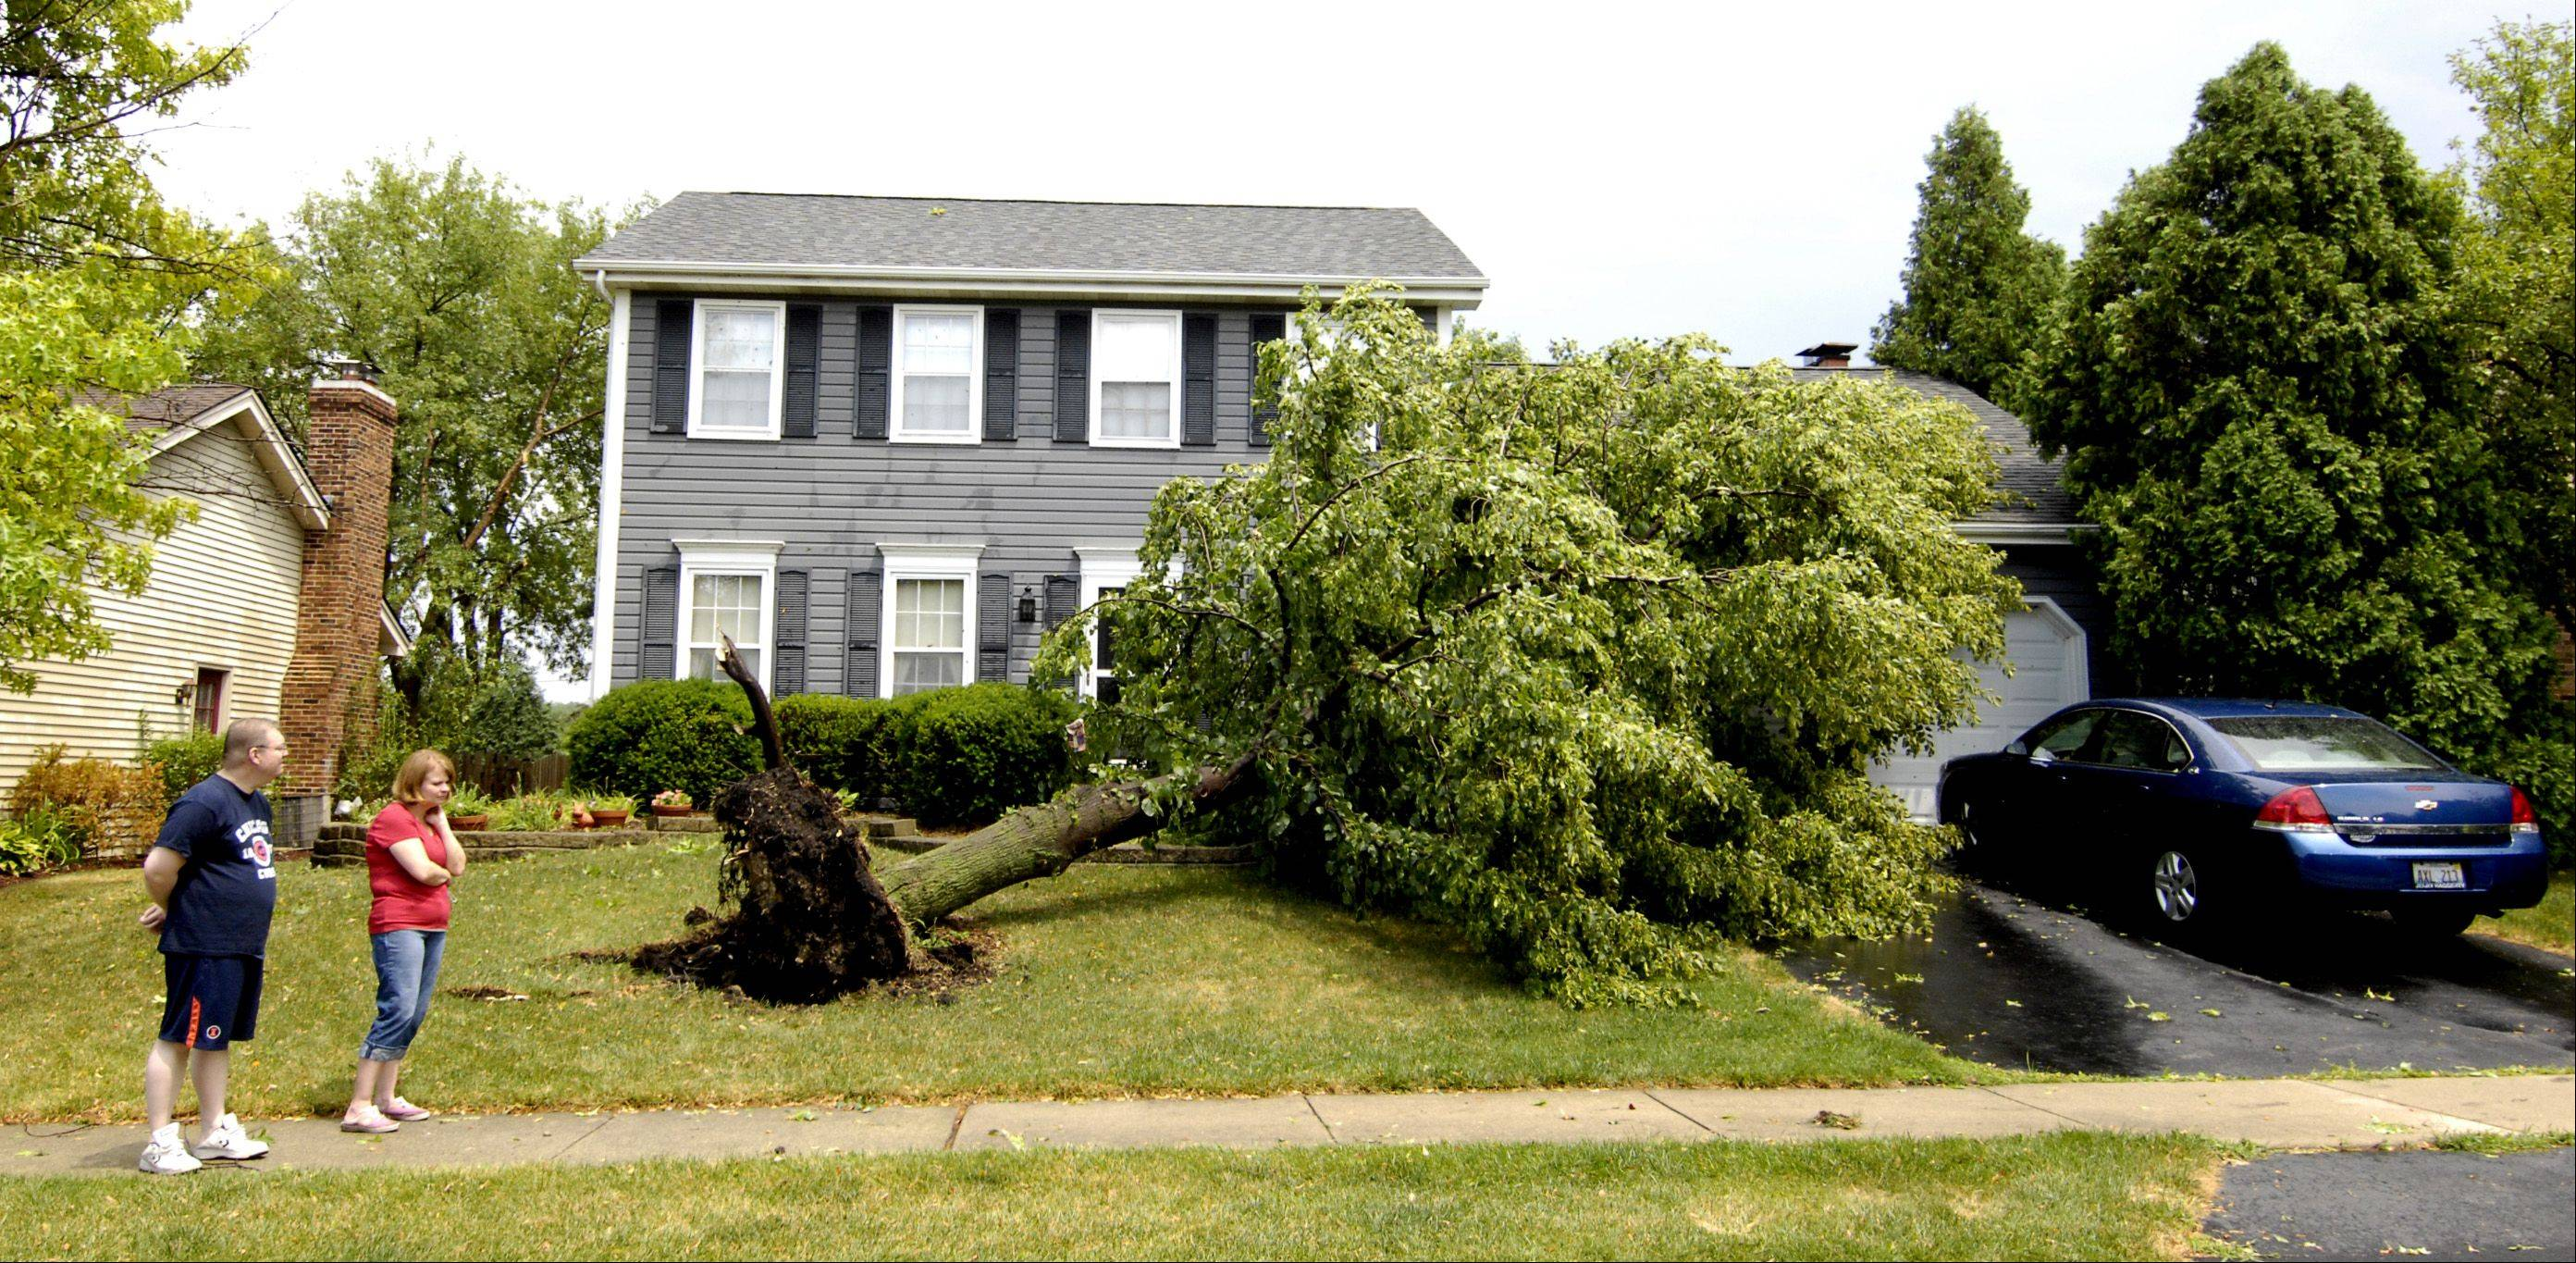 Mike and Julie Malone inspect the damage from a tree knocked over in front of their Winfield home Sunday afternoon. Heavy storms moved through the suburbs Sunday, downing trees and power lines and leaving more than 200,000 ComEd customers without electricity.